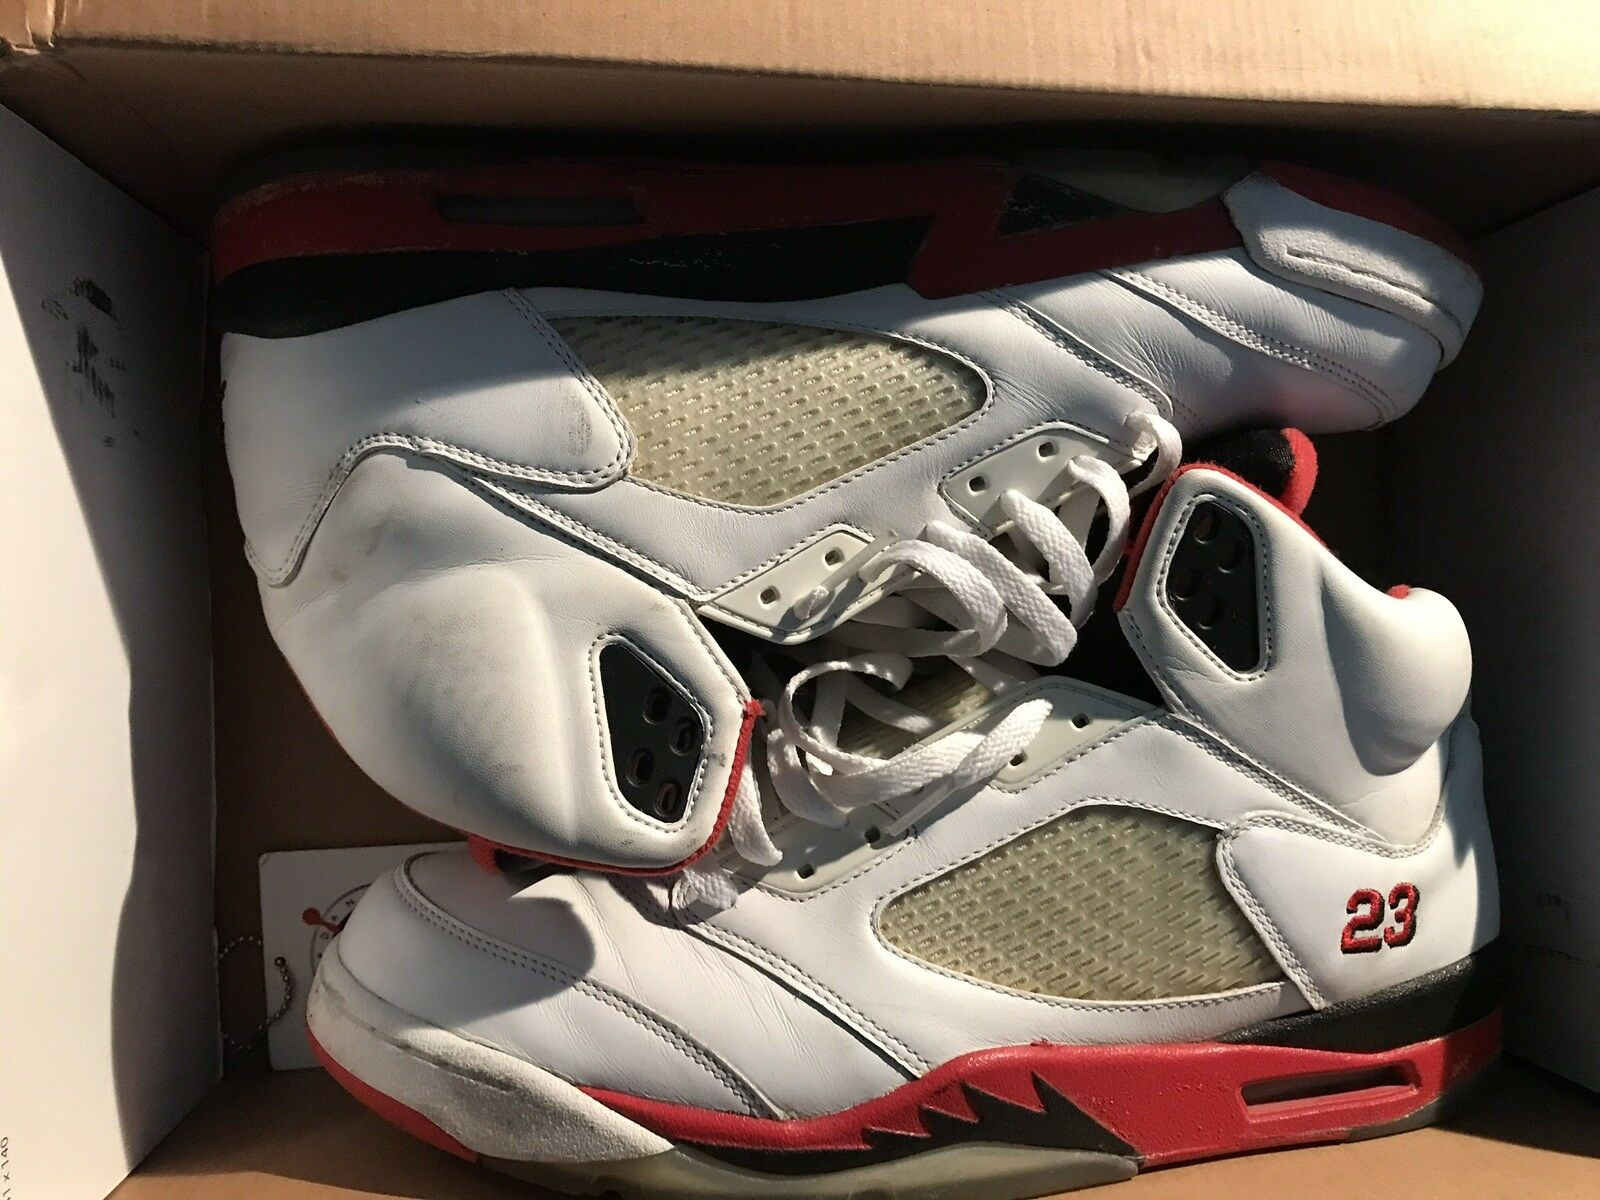 Jordan 5 fire red size 13